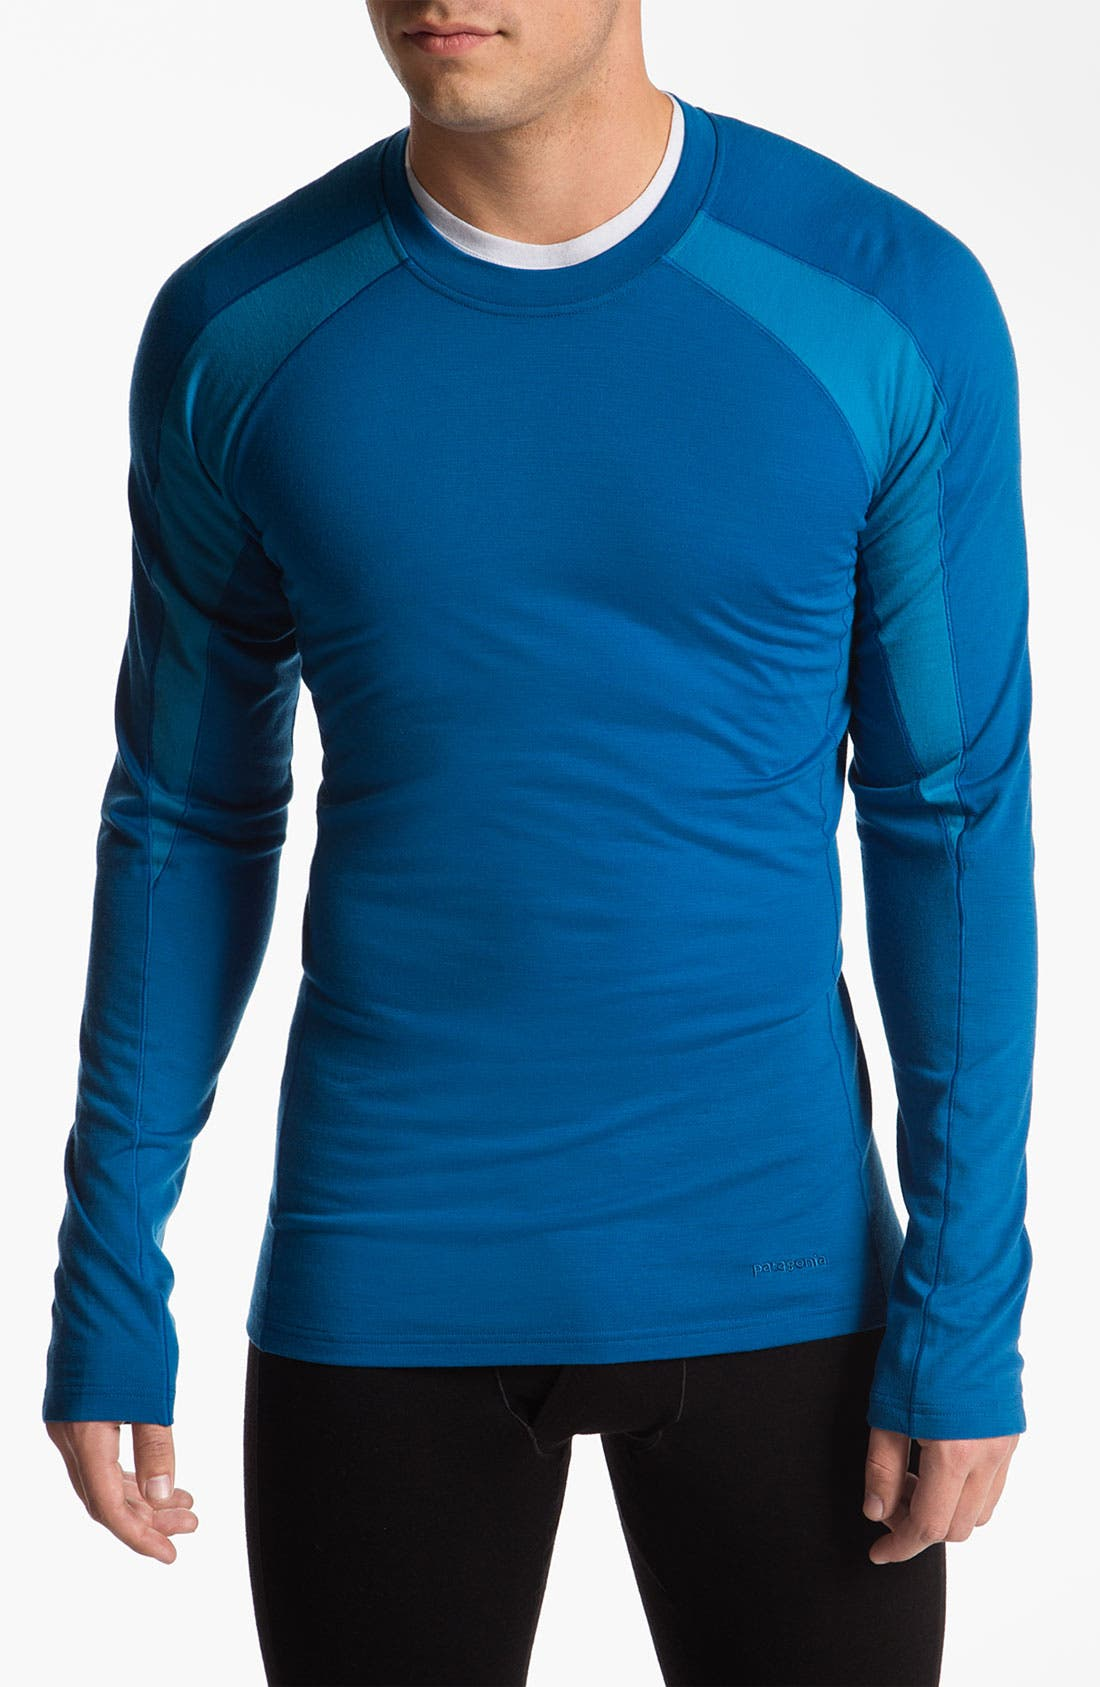 Alternate Image 1 Selected - Patagonia 'Merino 2' Long Sleeve T-Shirt (Online Only)